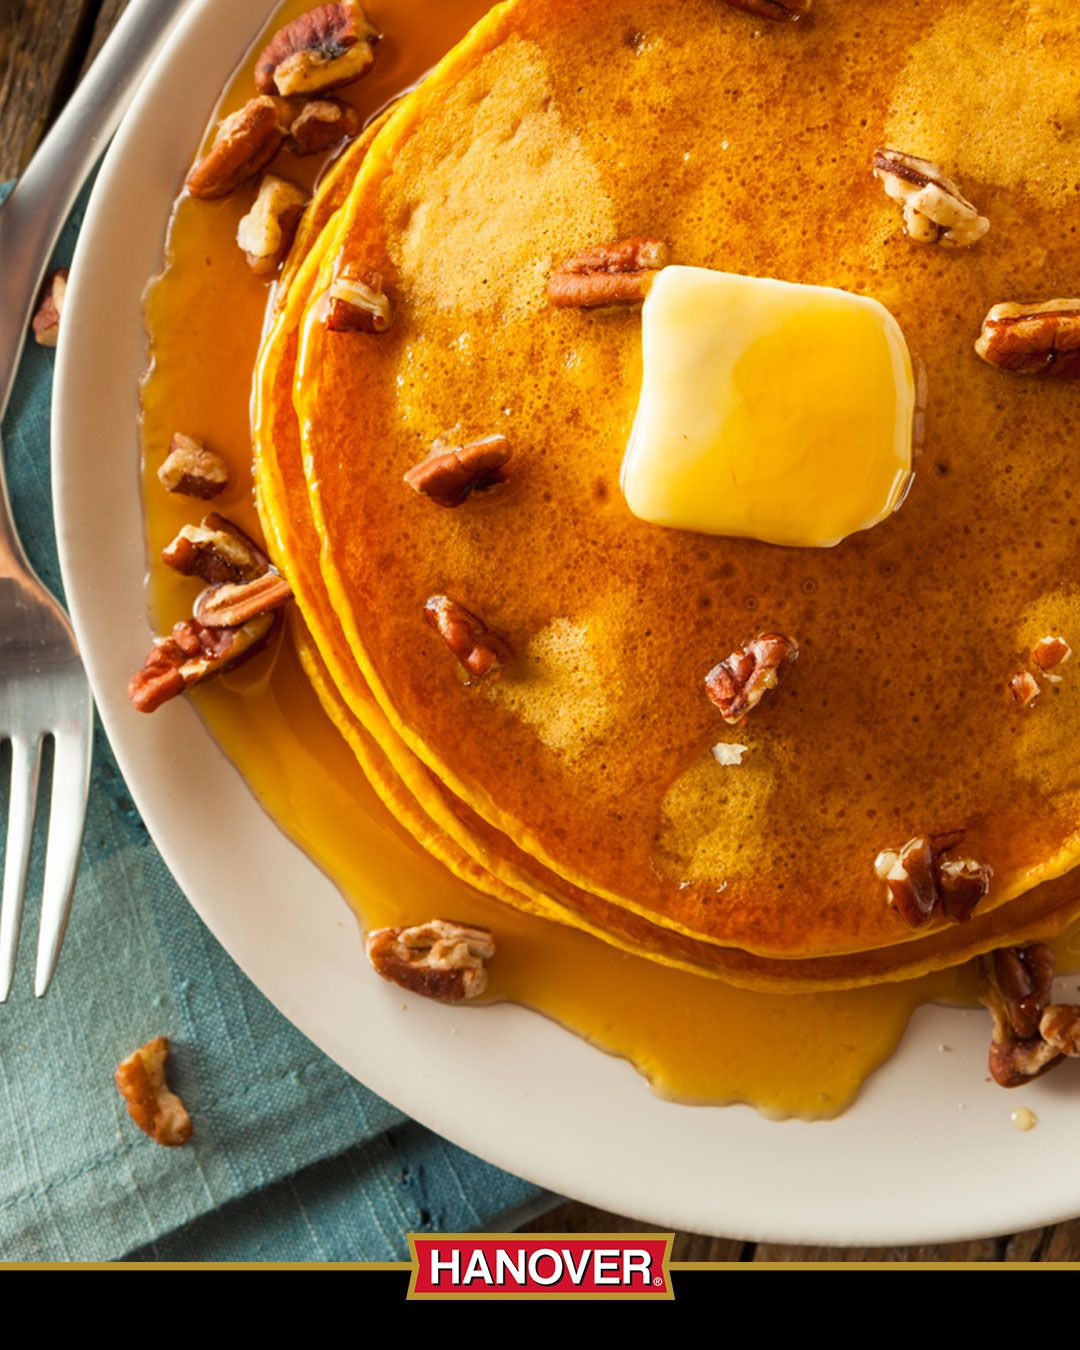 Who doesn't love a big ol' stack of pancakes for breakfast? These sweet potato pancakes will get your family off to a healthy start in the morning without sacrificing any of the flavor and texture they're used to. Hearty, comforting and better for you! #hanover #hanoverhappy #hanoverfoods #hanoverhealthy #coolrecipes #creativerecipes #easyrecipe #fitoliferecipes #fitrecipebox #healthrecipes #healthyrecipe #healthyrecipes #momsrecipe #pinterestrecipe #recipe #recipe4sucess #recipebook #recipebox  #pinterestrecipe